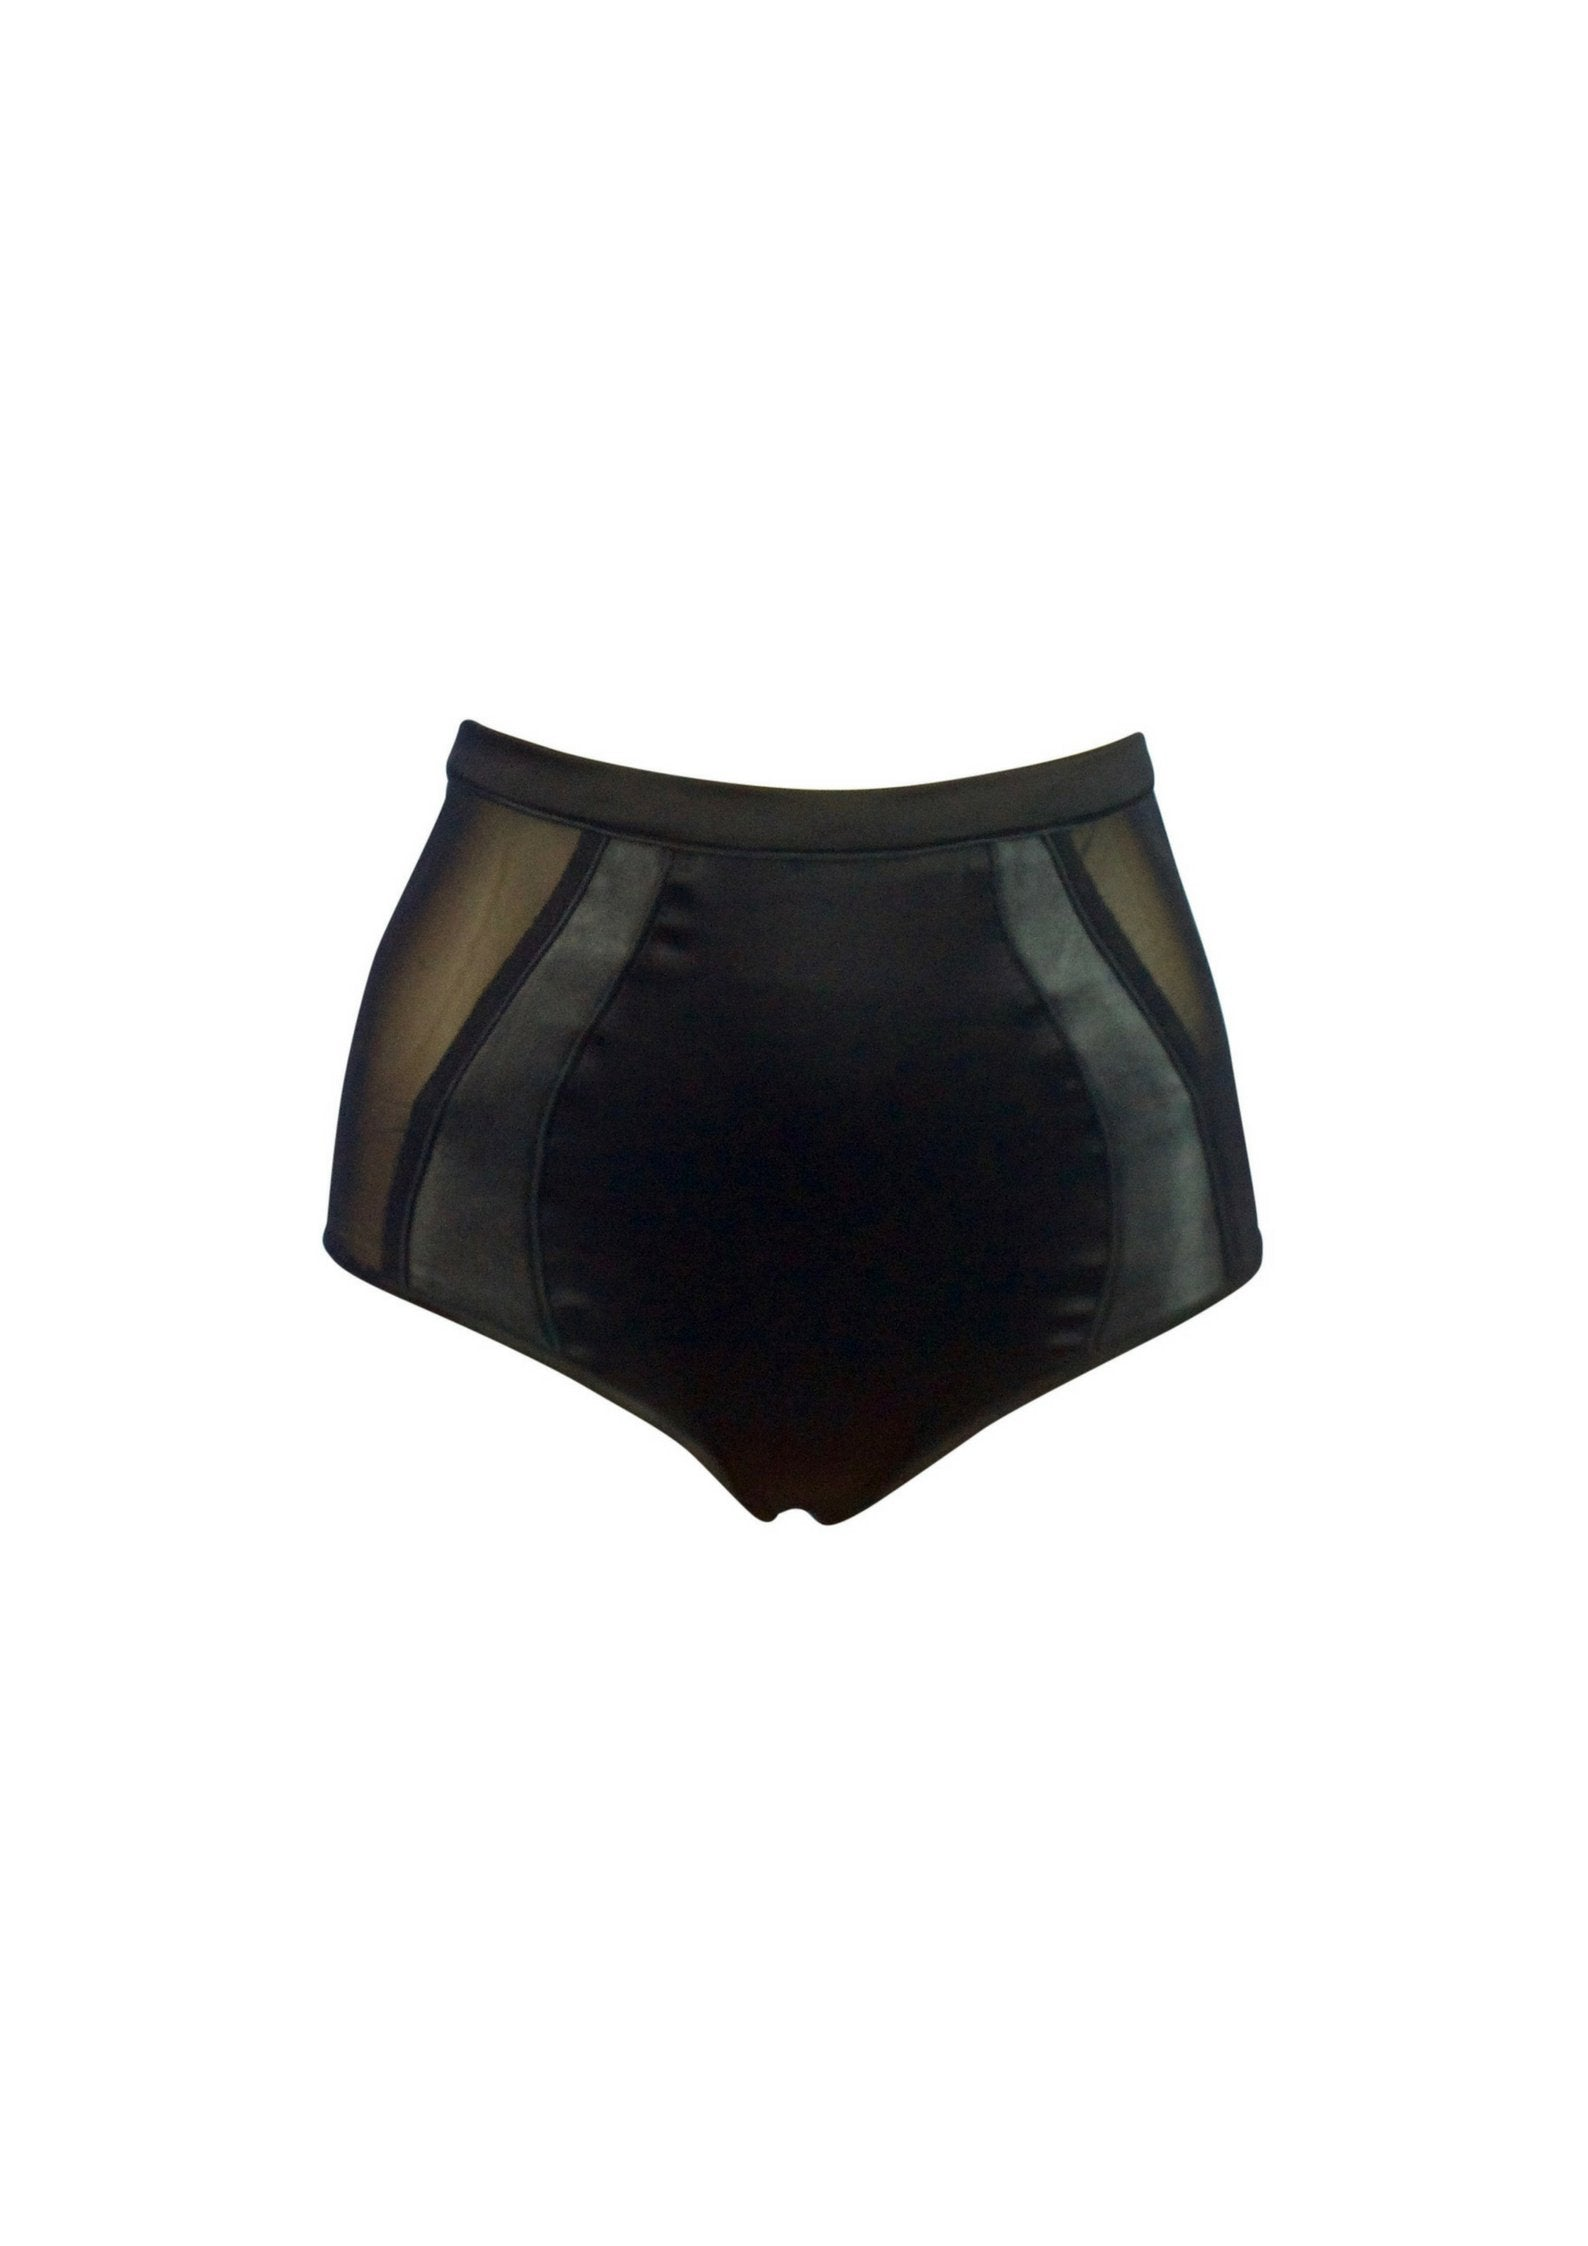 Lola 'n' Leather High waisted knickers - Available now